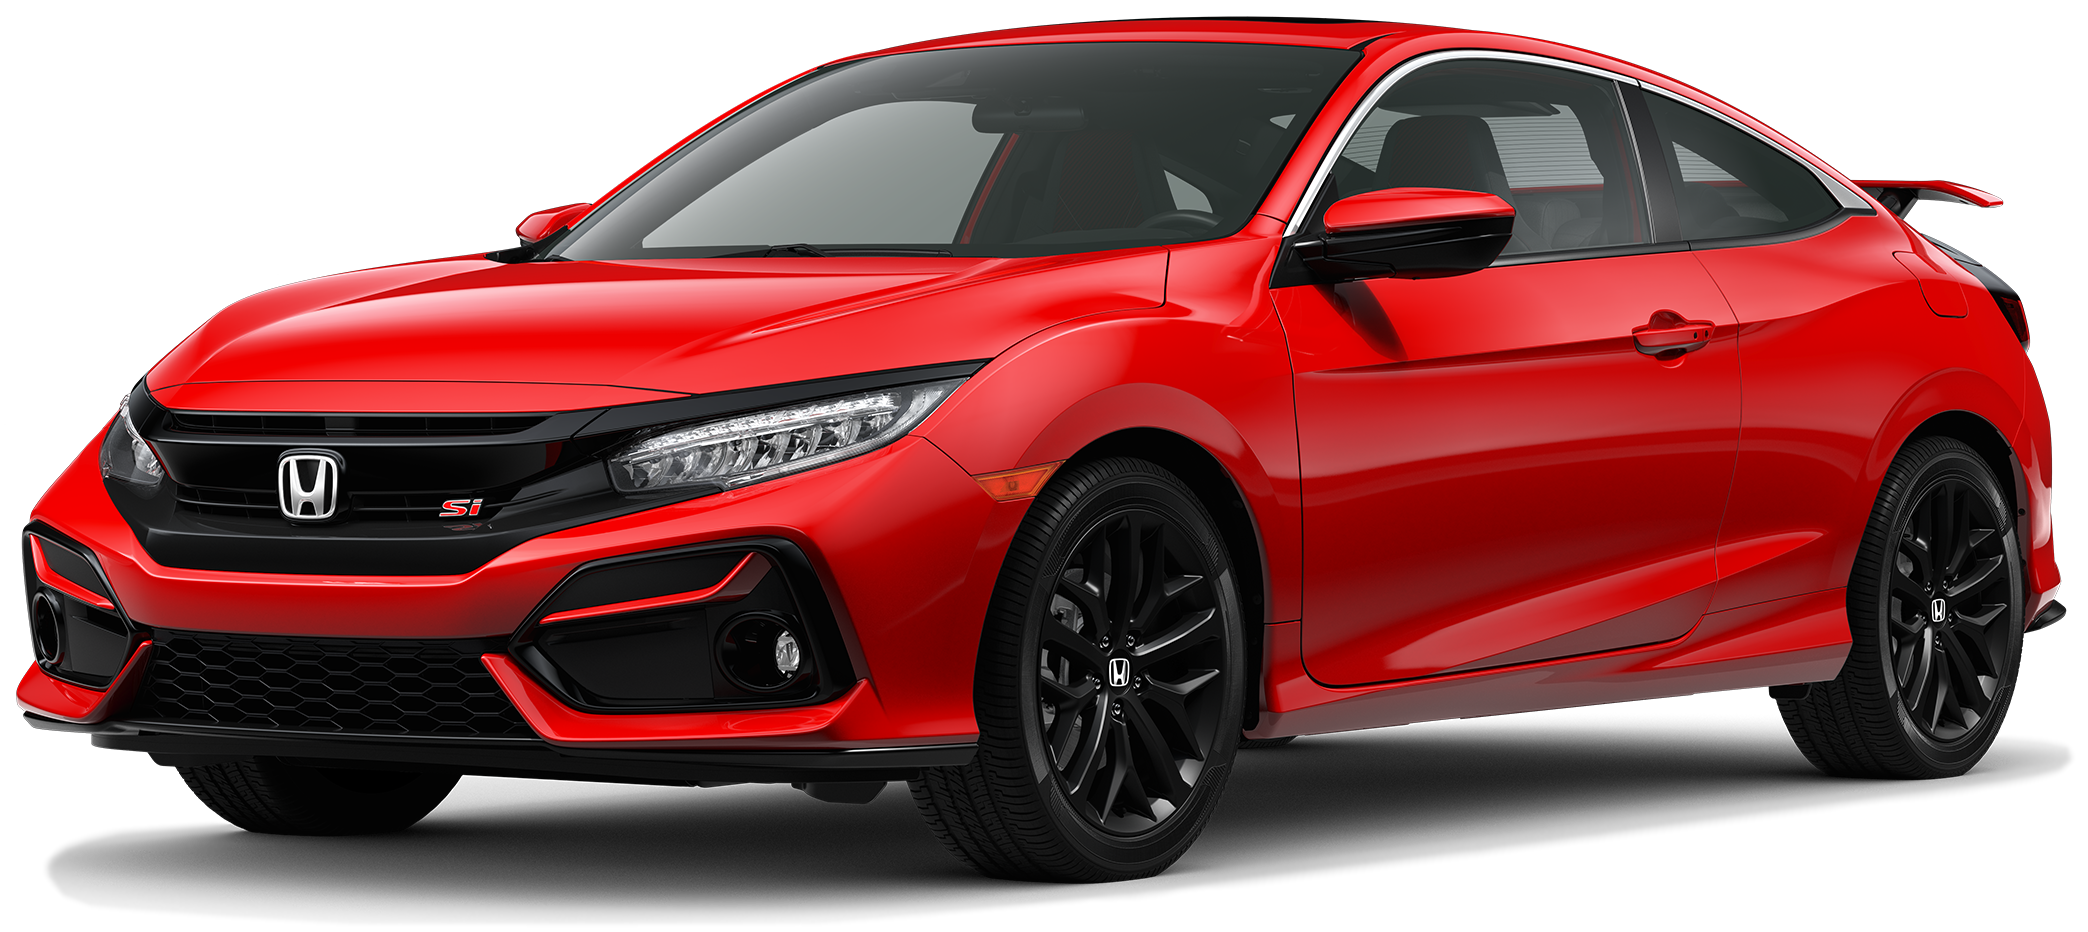 2020 Honda Civic Si Incentives Specials Offers In Colorado Springs Co